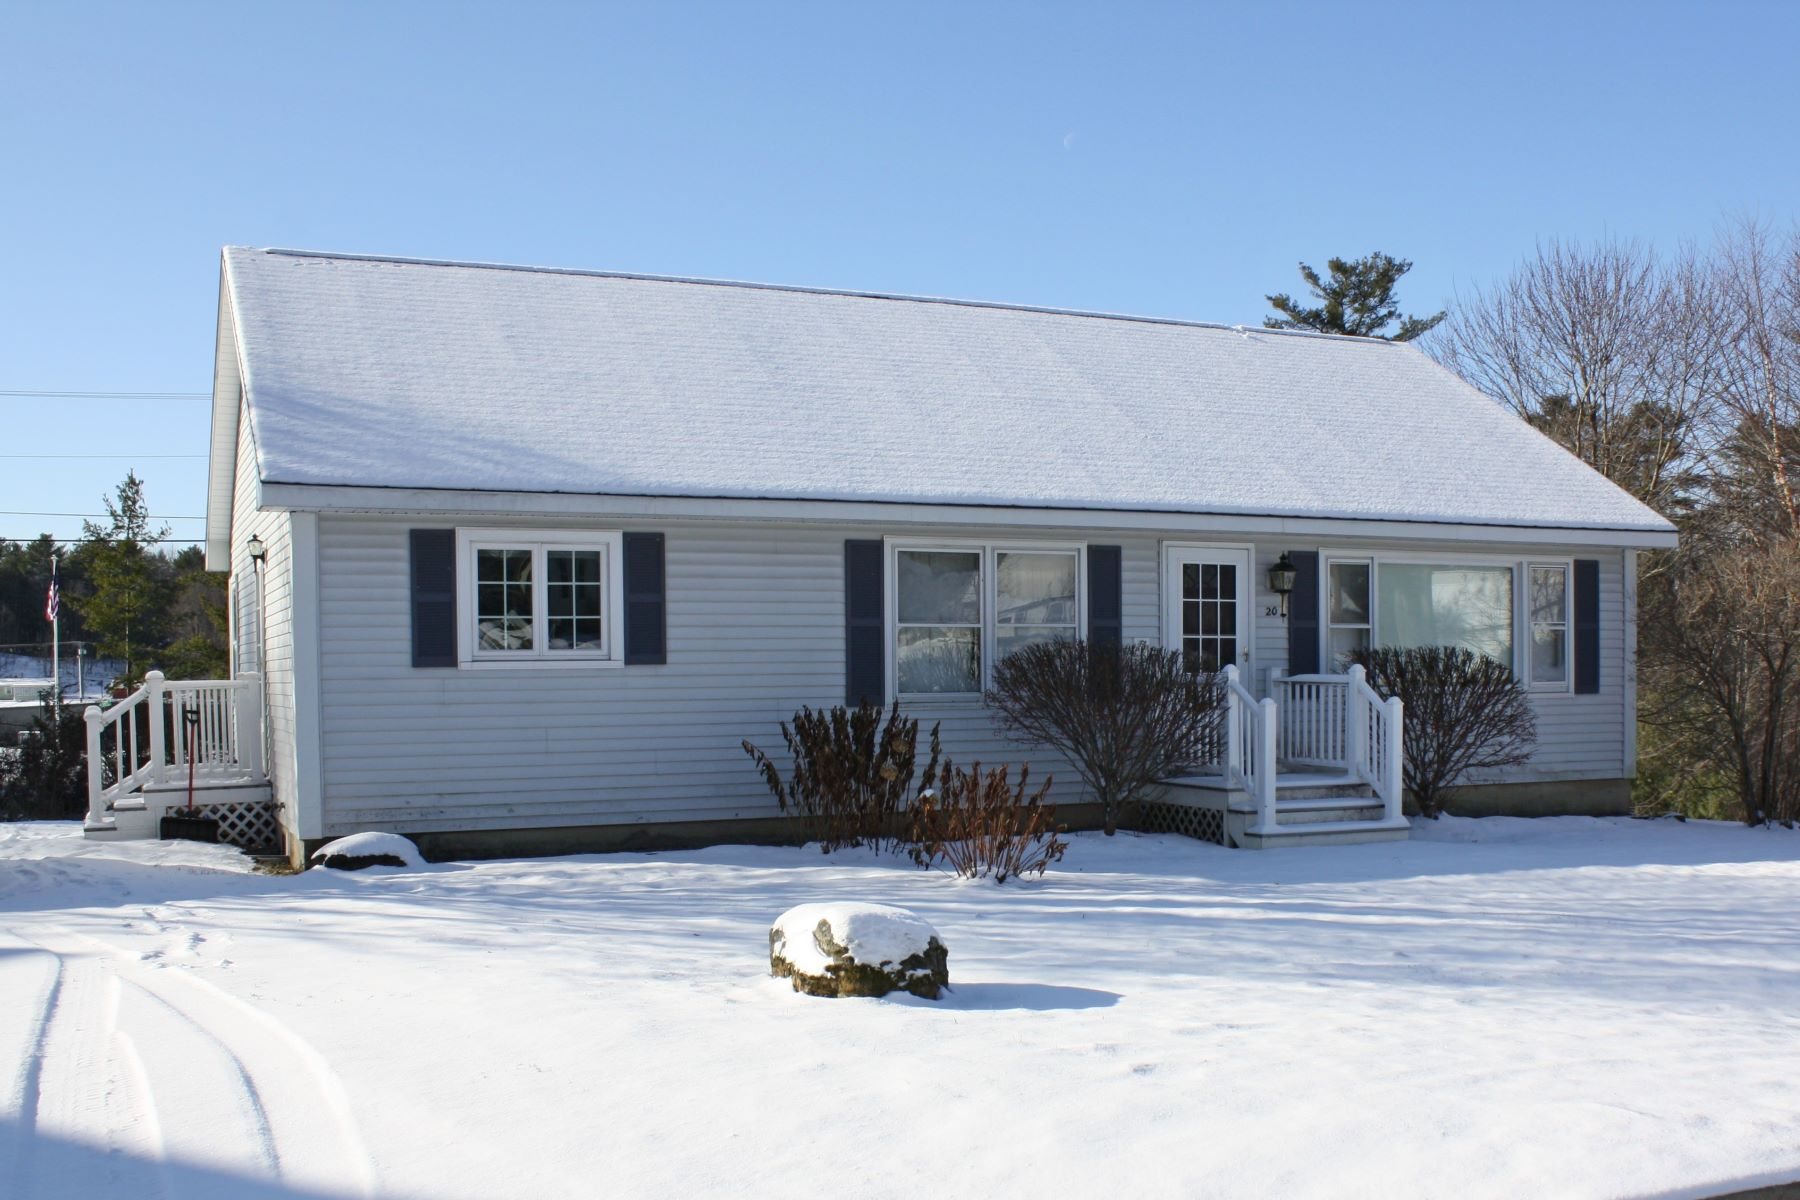 Single Family Homes for Sale at Light filled 3 bedroom well maintained Ranch 20 Stonegate Drive Middlebury, Vermont 05753 United States